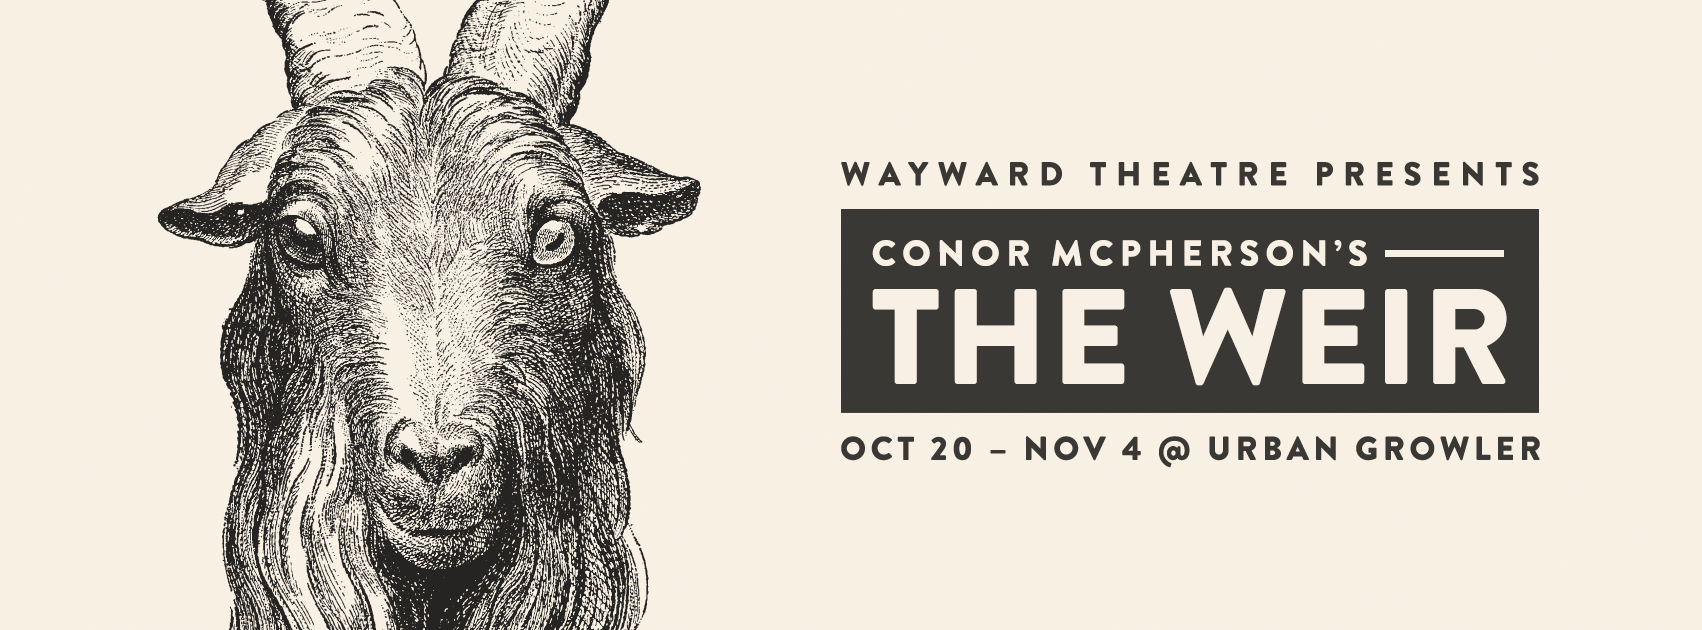 See Connor McPherson's The Weir Oct 20 - Nov 4